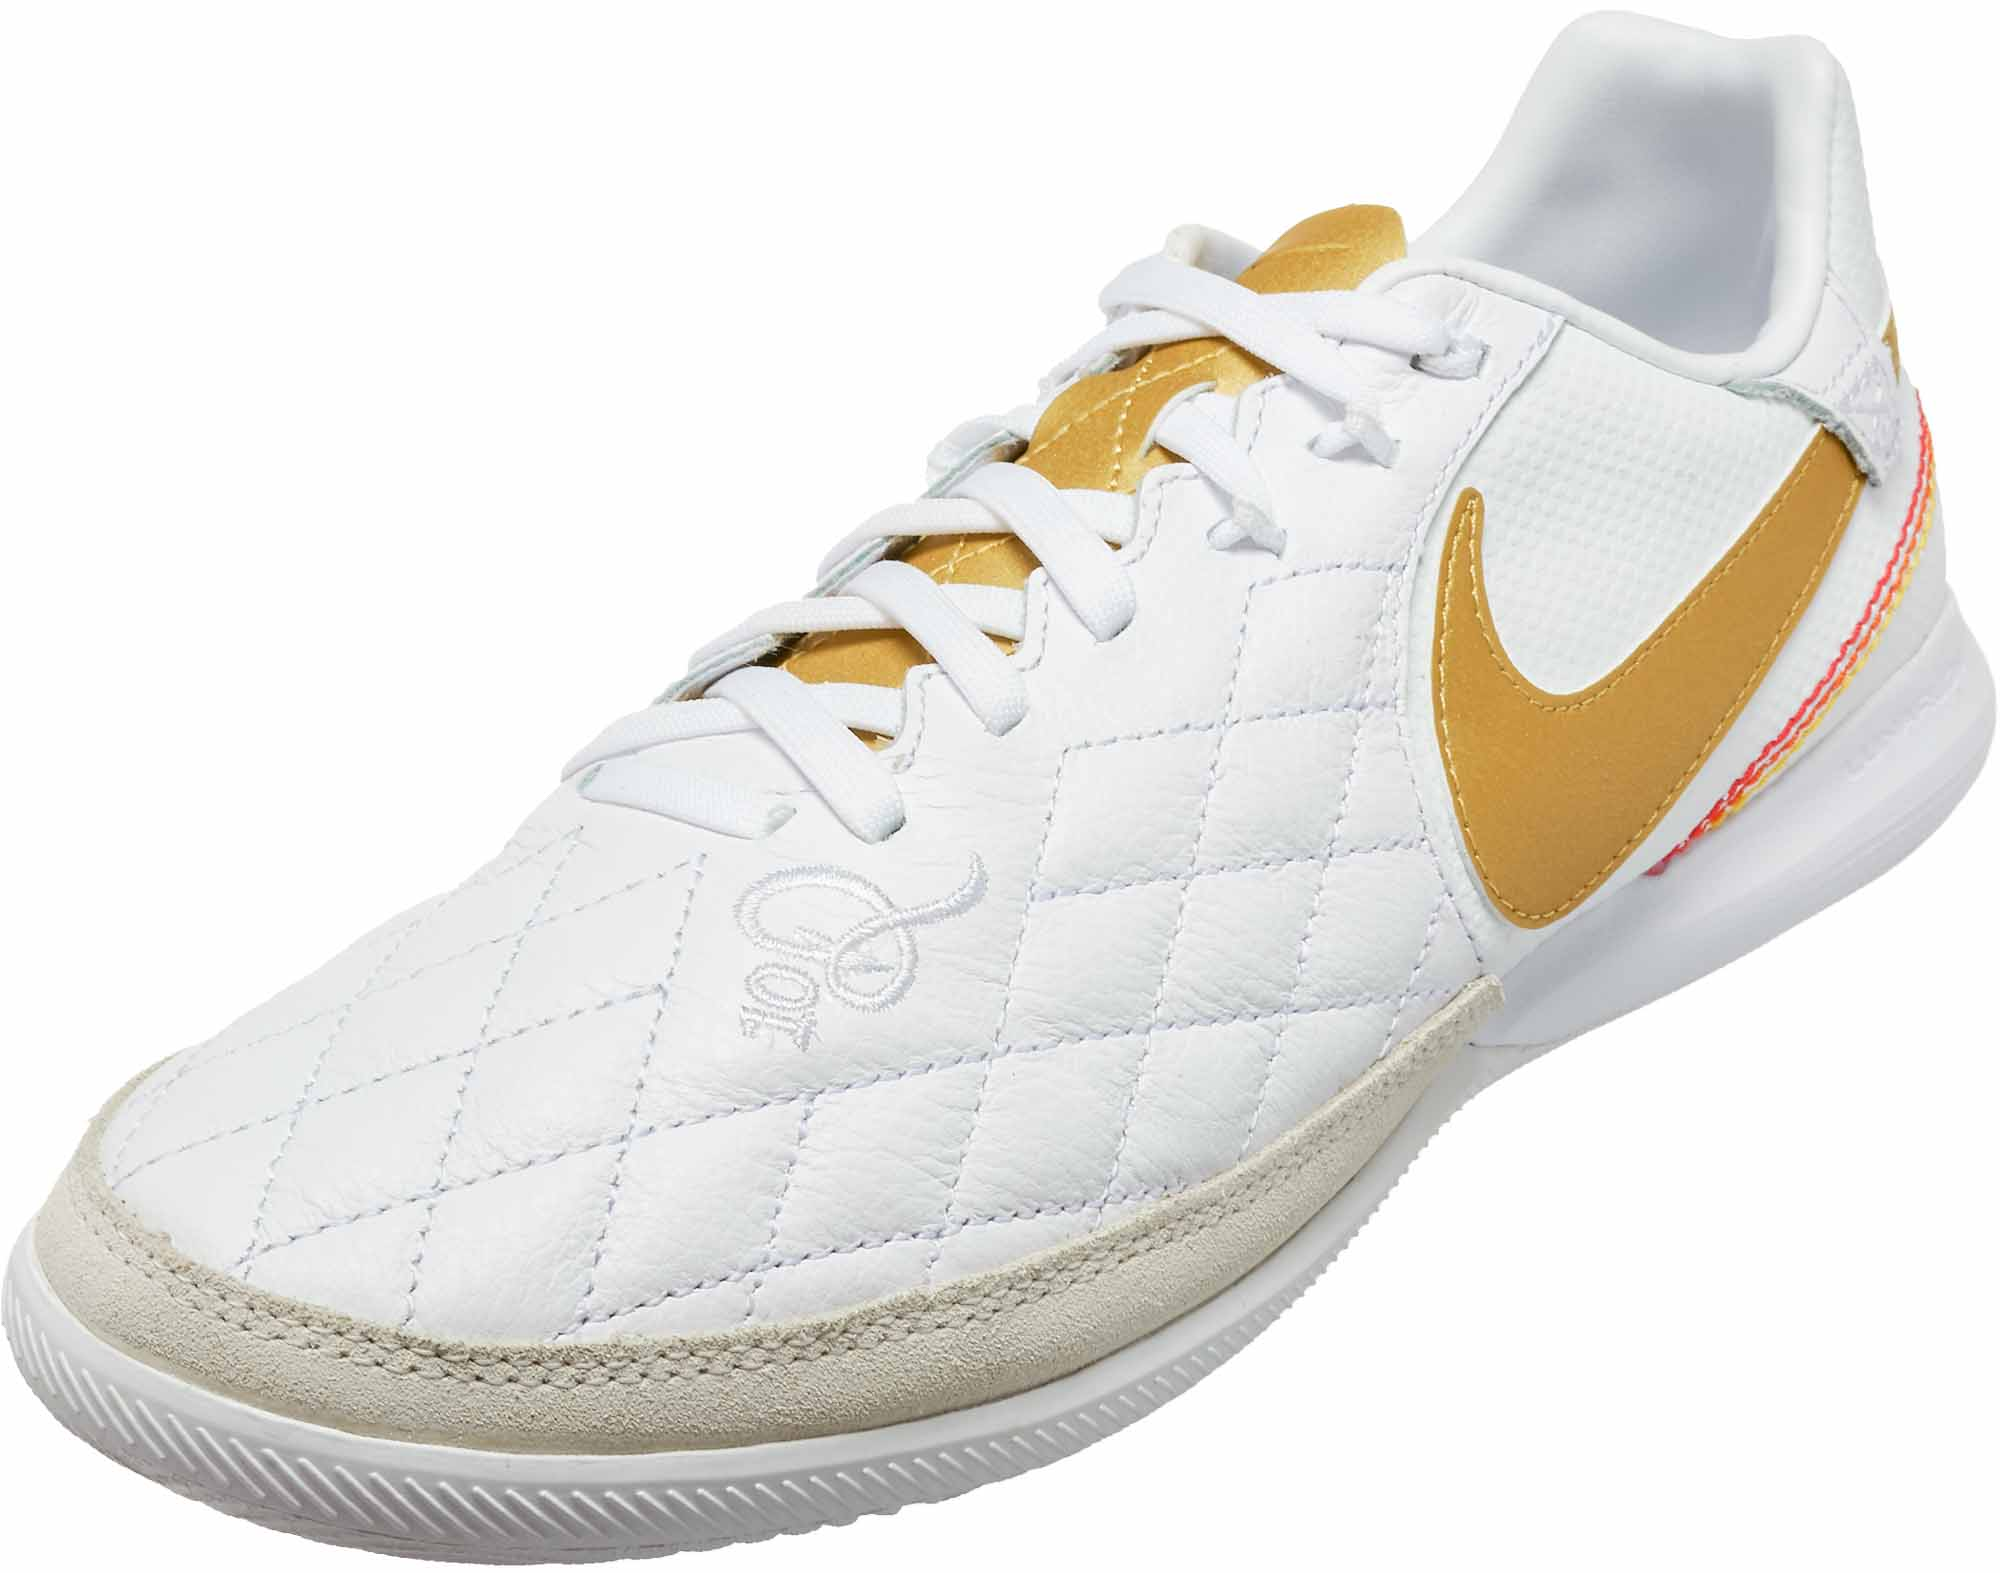 1586734da1c Nike Lunar LegendX 7 Pro IC - 10R - White Metallic Gold White ...